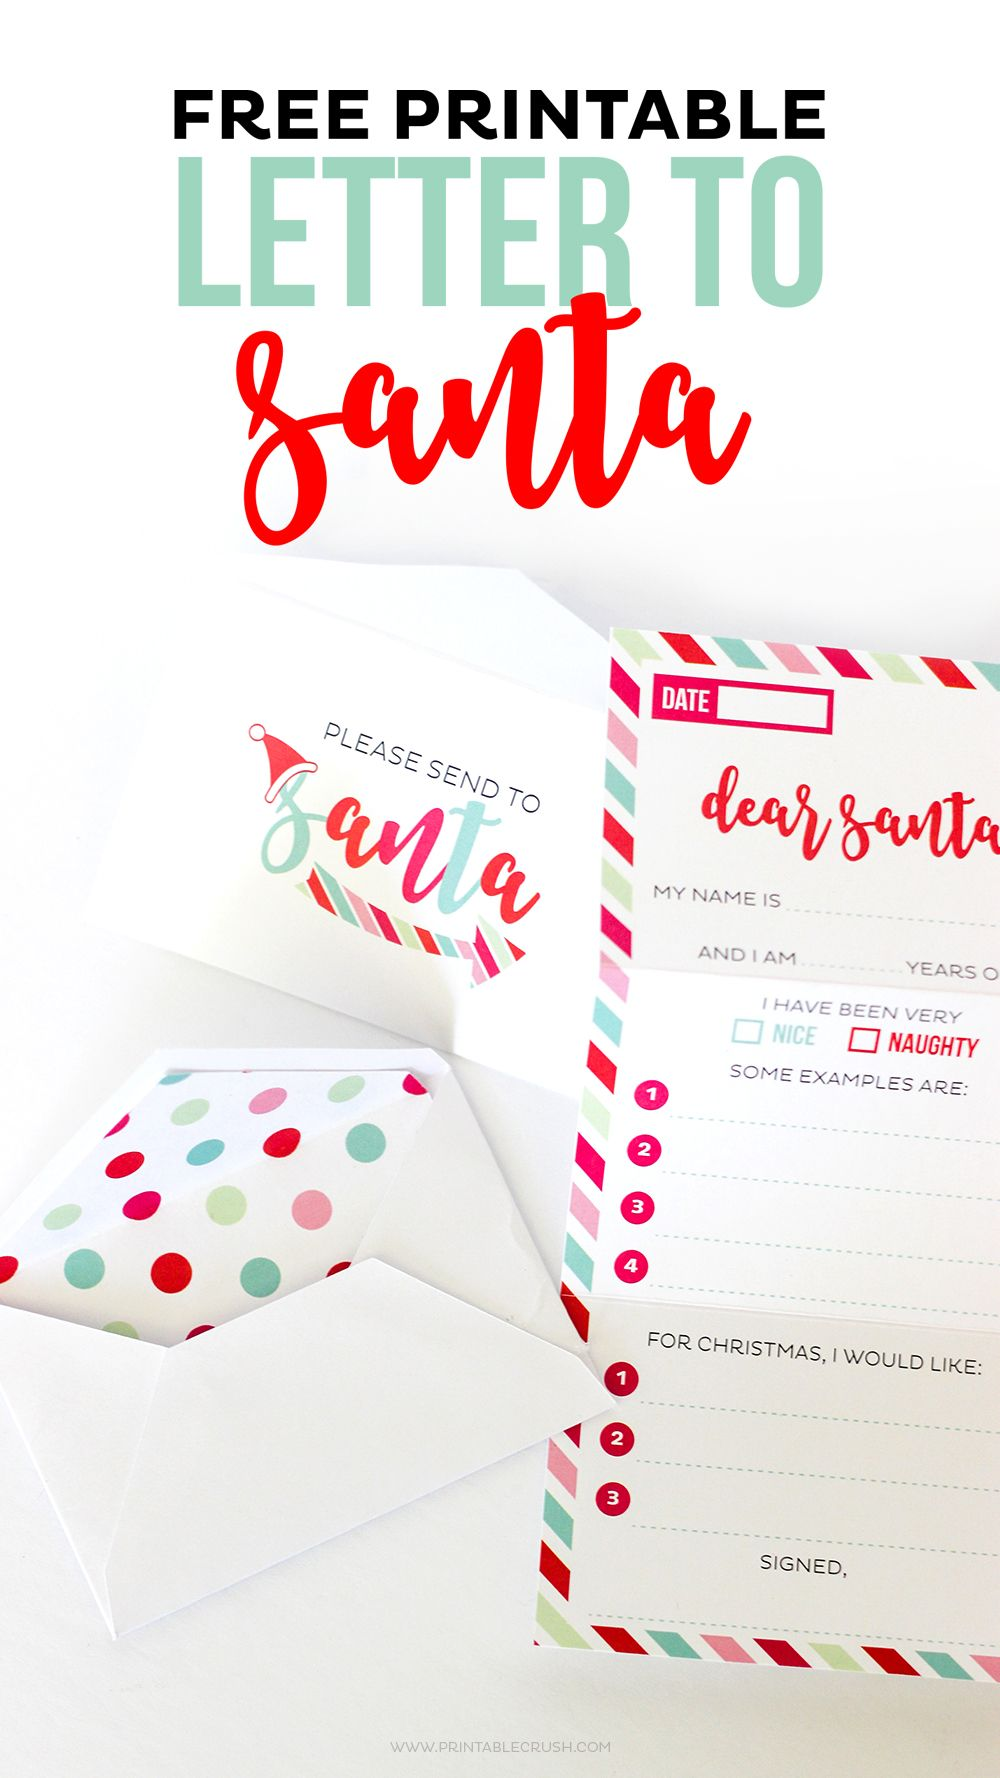 This Adorable Free Santa Letter Printable Set Includes A TriFold